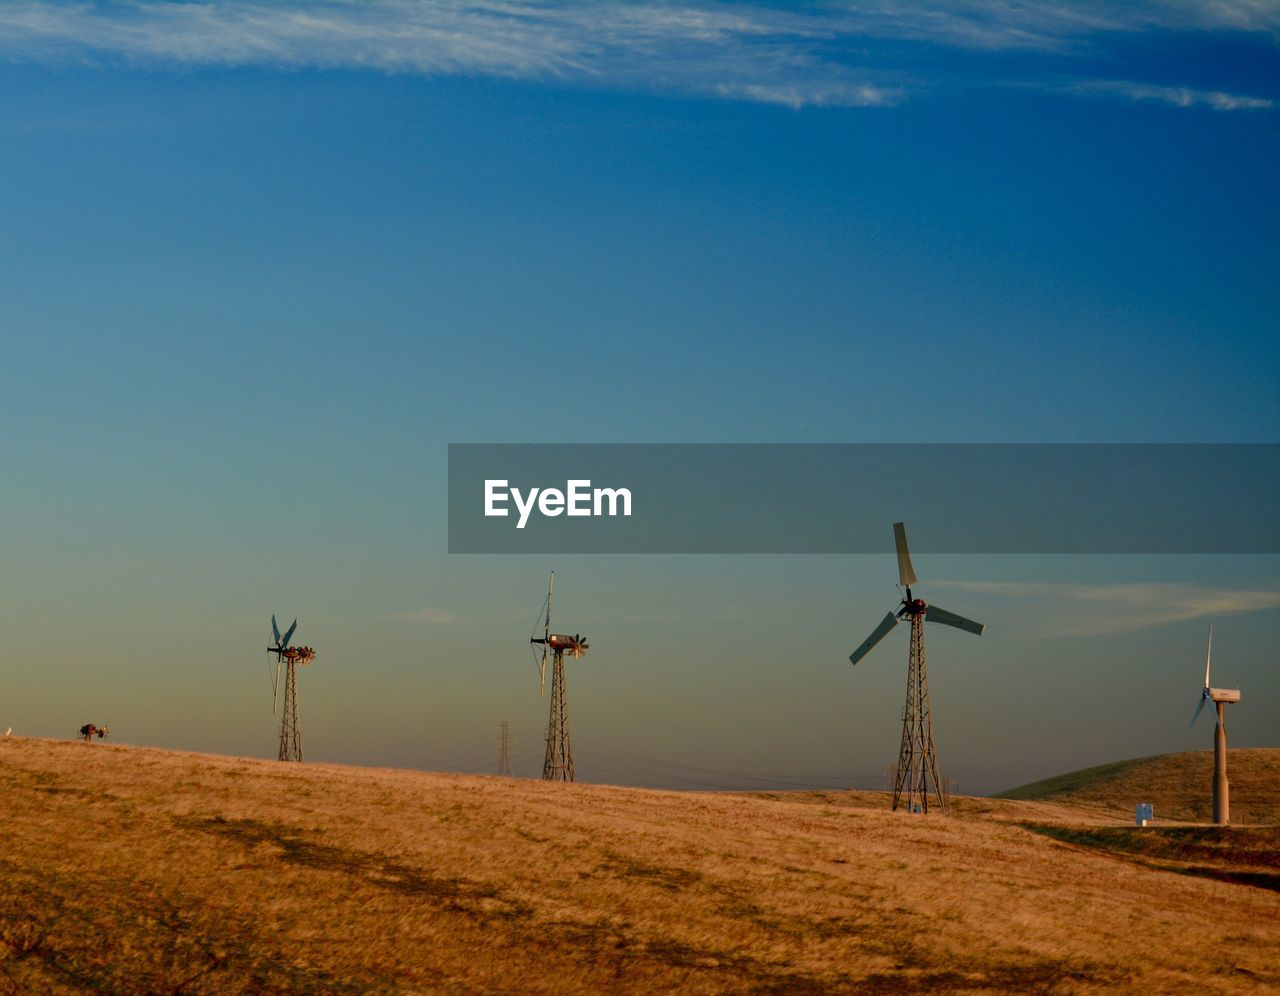 sky, wind turbine, environment, alternative energy, environmental conservation, renewable energy, fuel and power generation, turbine, wind power, landscape, field, land, nature, scenics - nature, beauty in nature, tranquil scene, rural scene, blue, tranquility, non-urban scene, outdoors, no people, sustainable resources